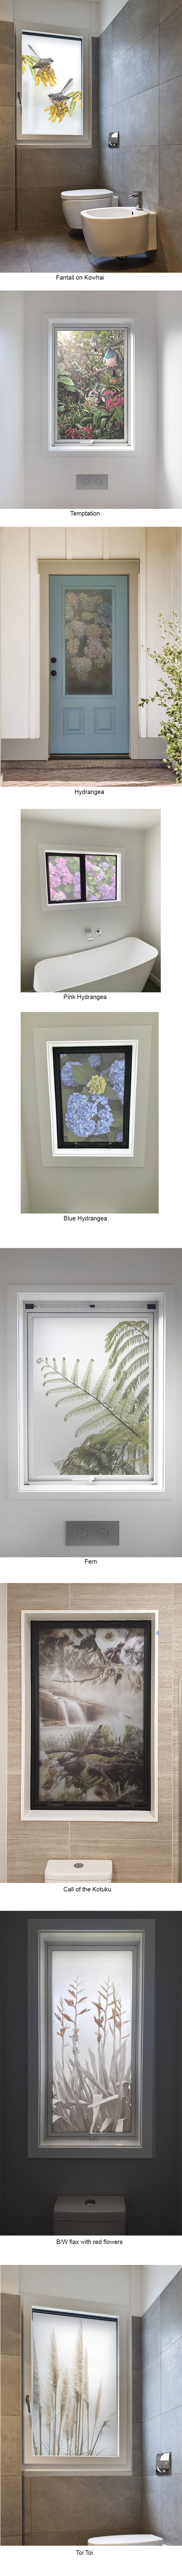 printed-window-art-frosted-films-lucy-g.jpg